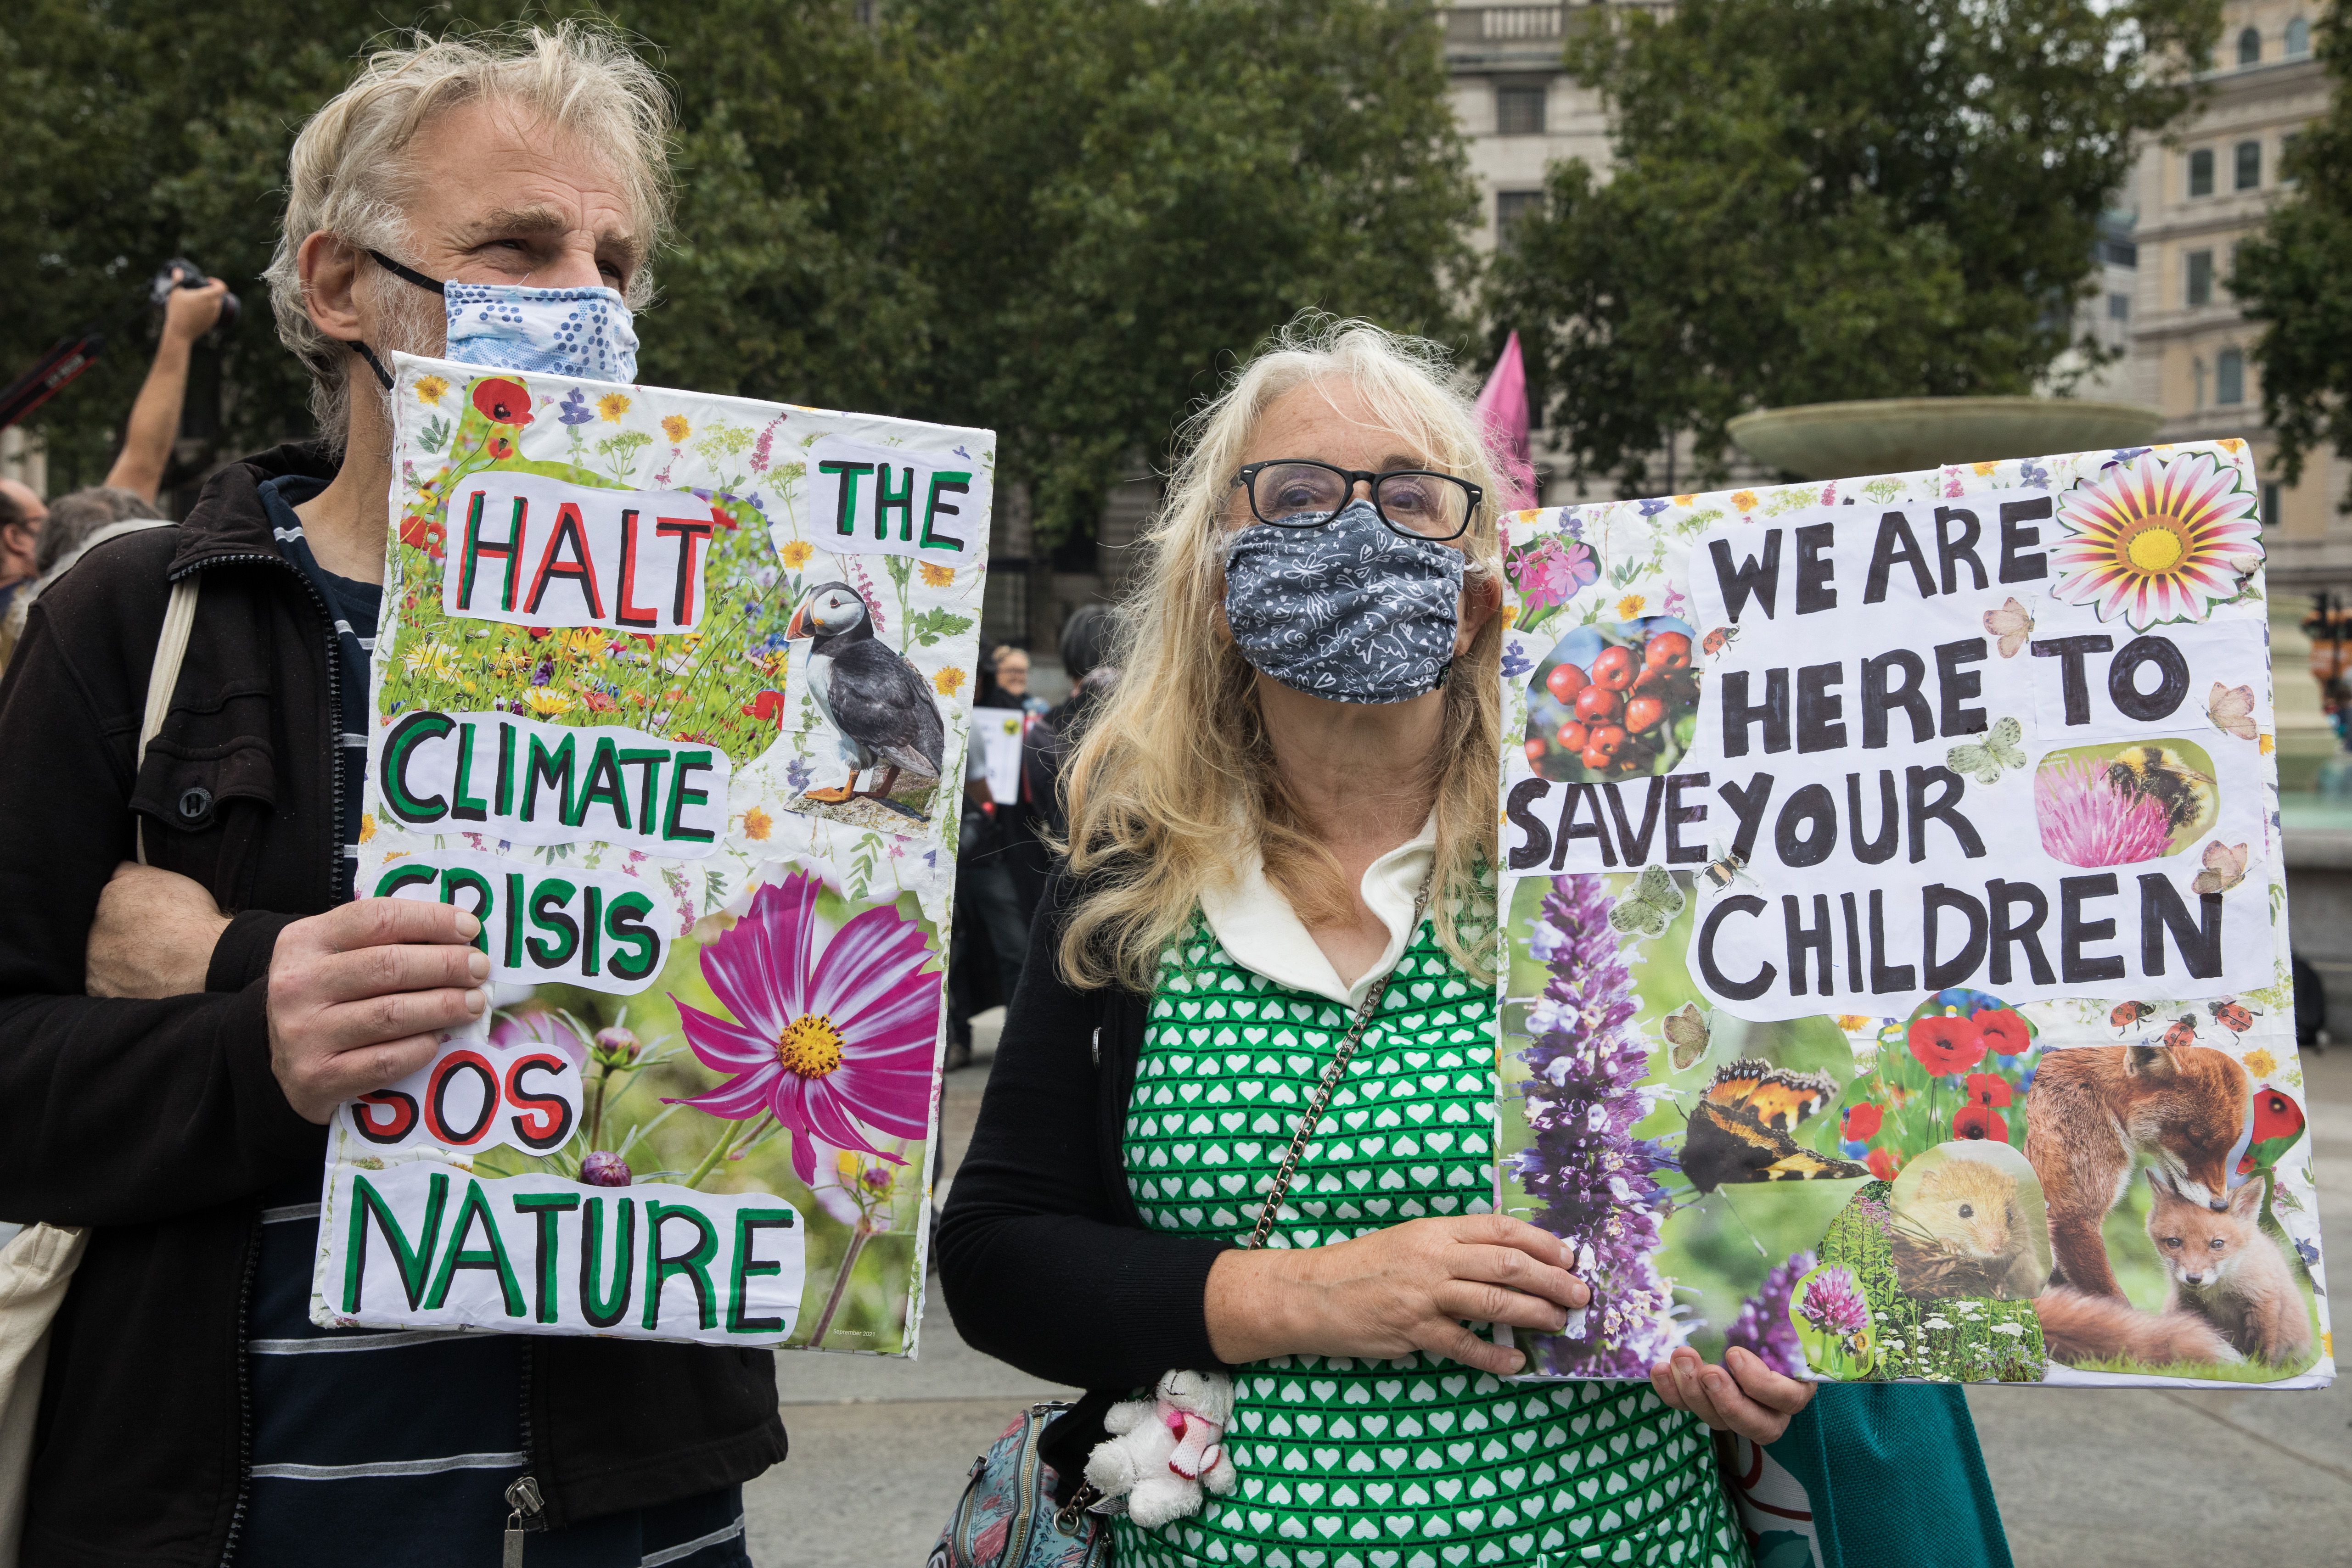 <p>Extinction Rebellion climate activists assemble in Trafalgar Square to take part in a colourful March for Nature on the final day of their two-week Impossible Rebellion on 4th September 2021 in London, United Kingdom. Extinction Rebellion are calling on the UK government to cease all new fossil fuel investment with immediate effect. (photo by Mark Kerrison/In Pictures via Getty Images)</p>